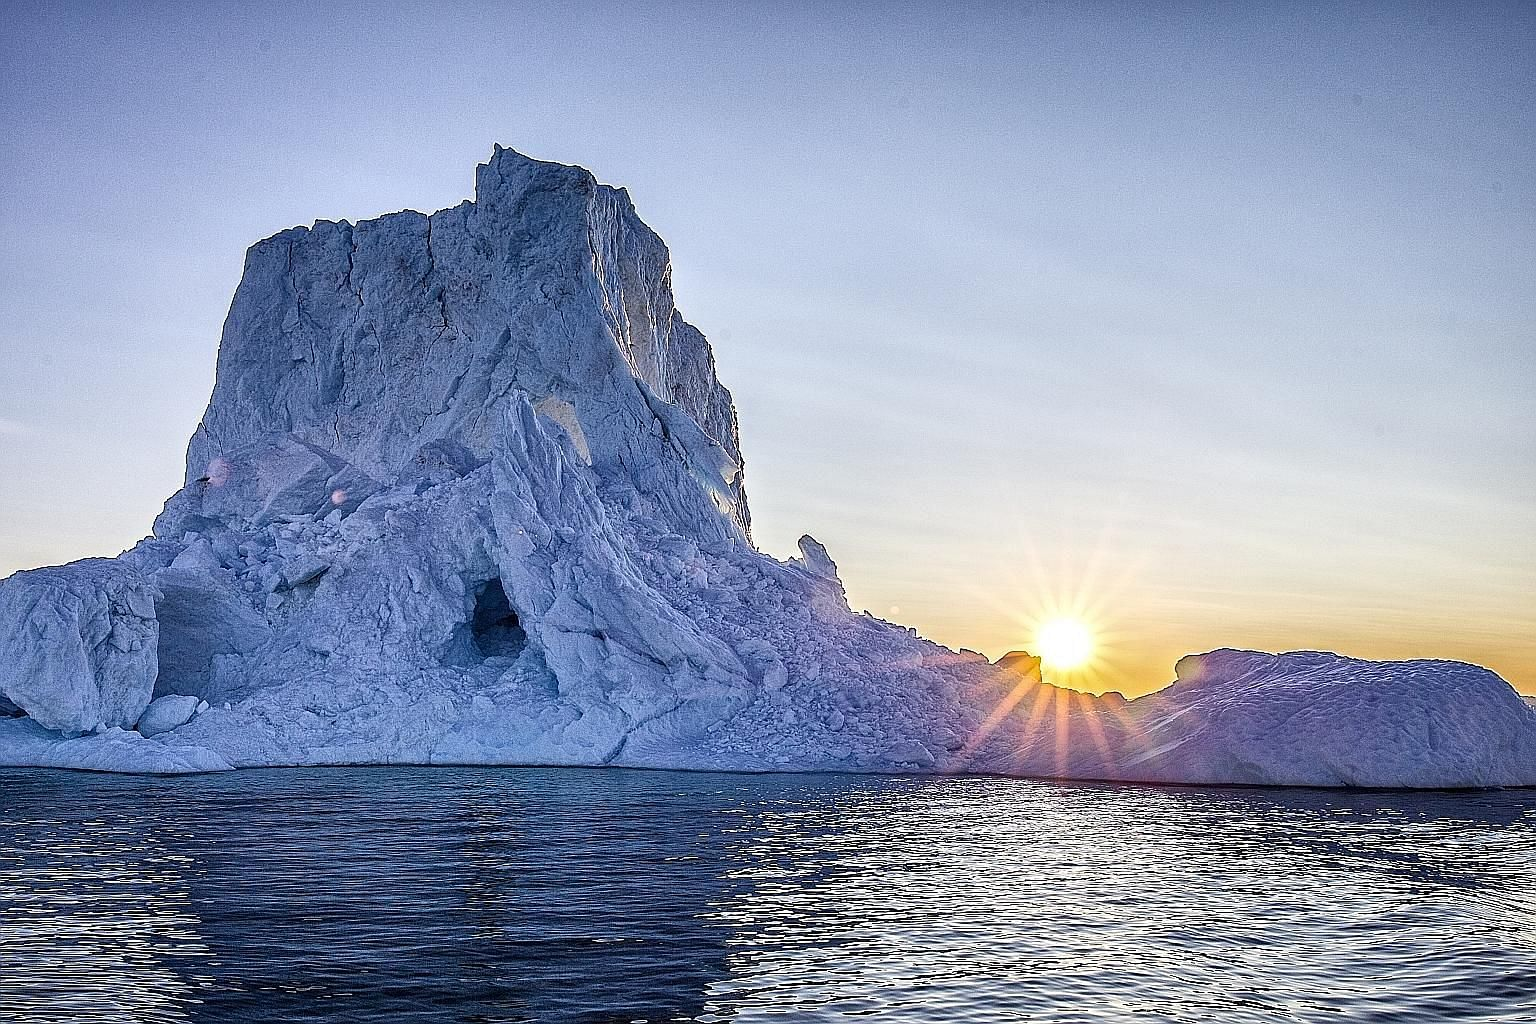 Book a 12-day Iceland And Greenland Cruise Tour at the Chan Brothers Beyond 50 Holiday Fiesta and enjoy up to $1,000 off for the second traveller. Earn Fraser World loyalty programme points when you stay at Fraser Suites Sydney in Australia.